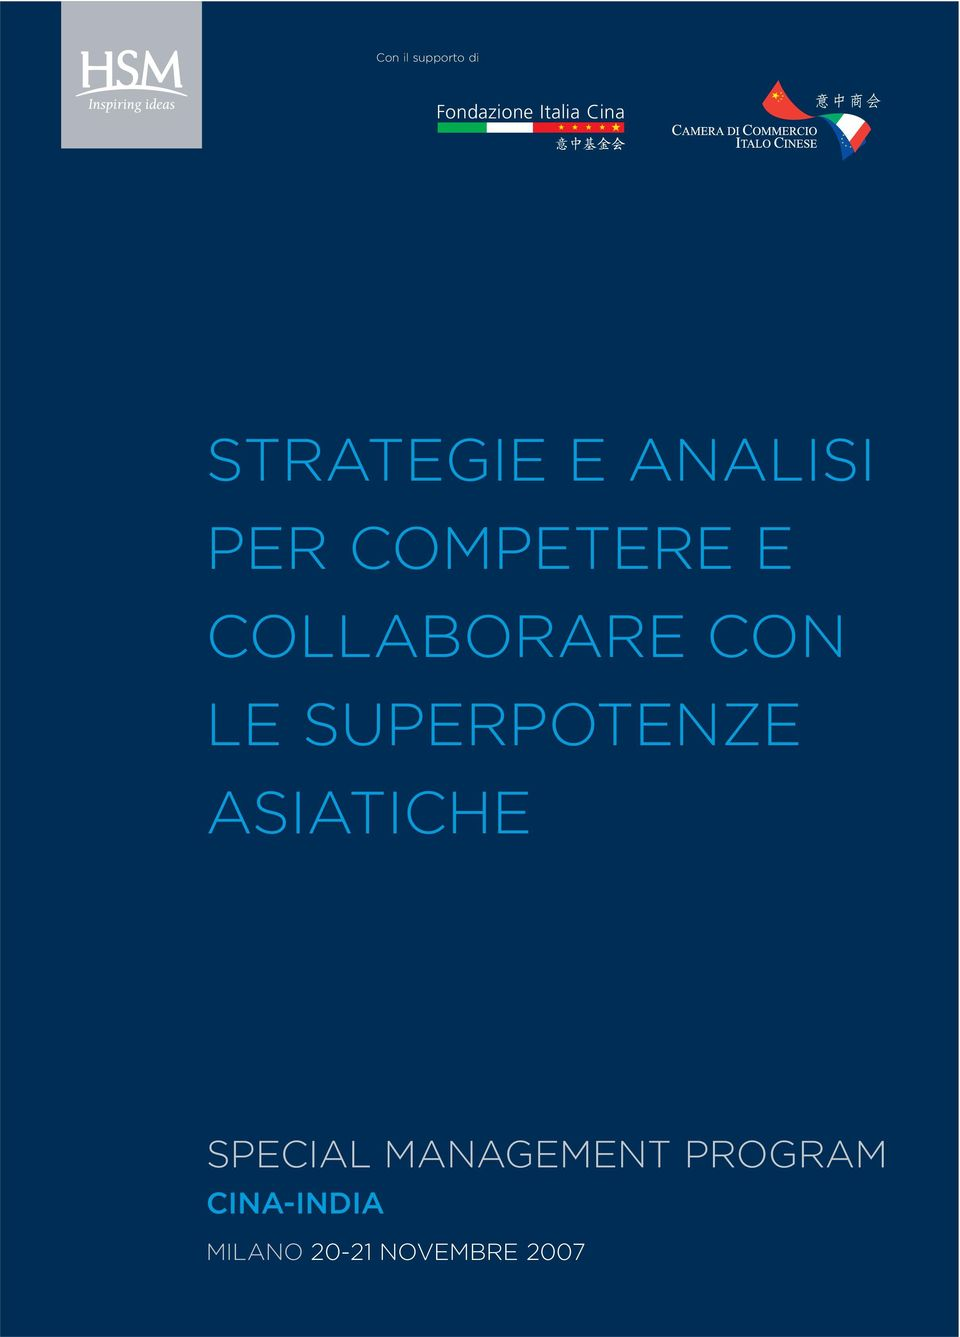 COLLABORARE CON LE SUPERPOTENZE ASIATICHE